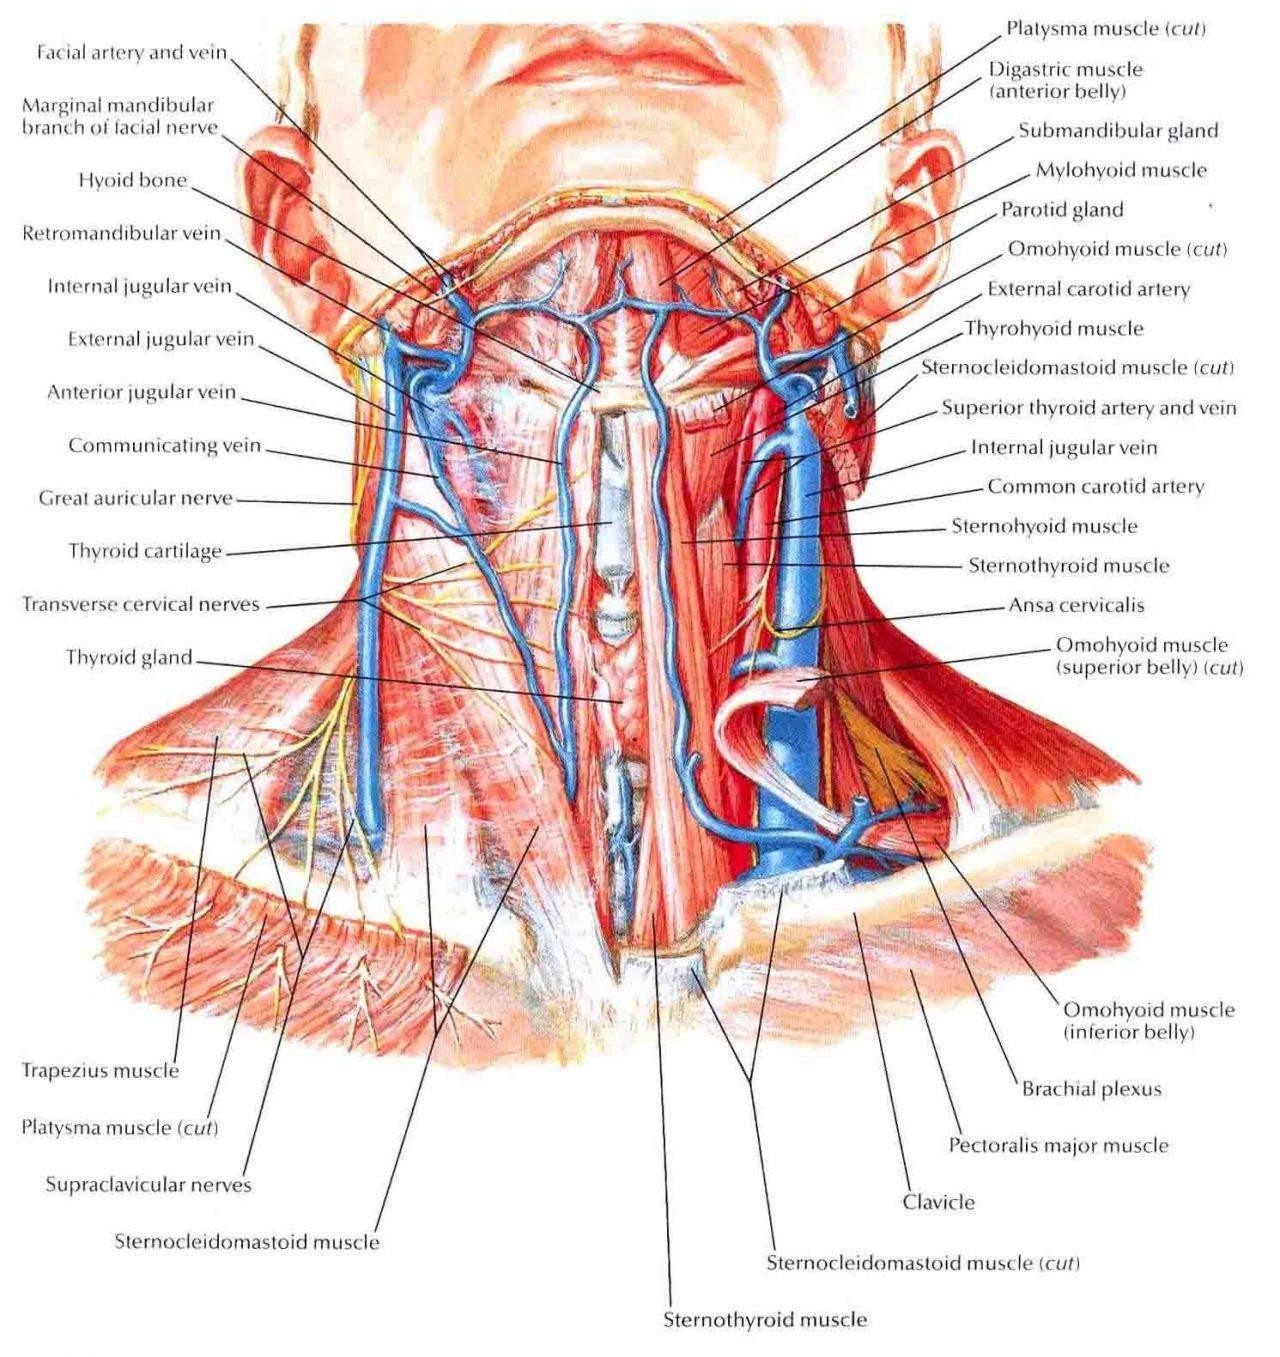 Human Throat Anatomy Muscles Of The Anterior Neck Lymph Node At The Throat Of Human Human